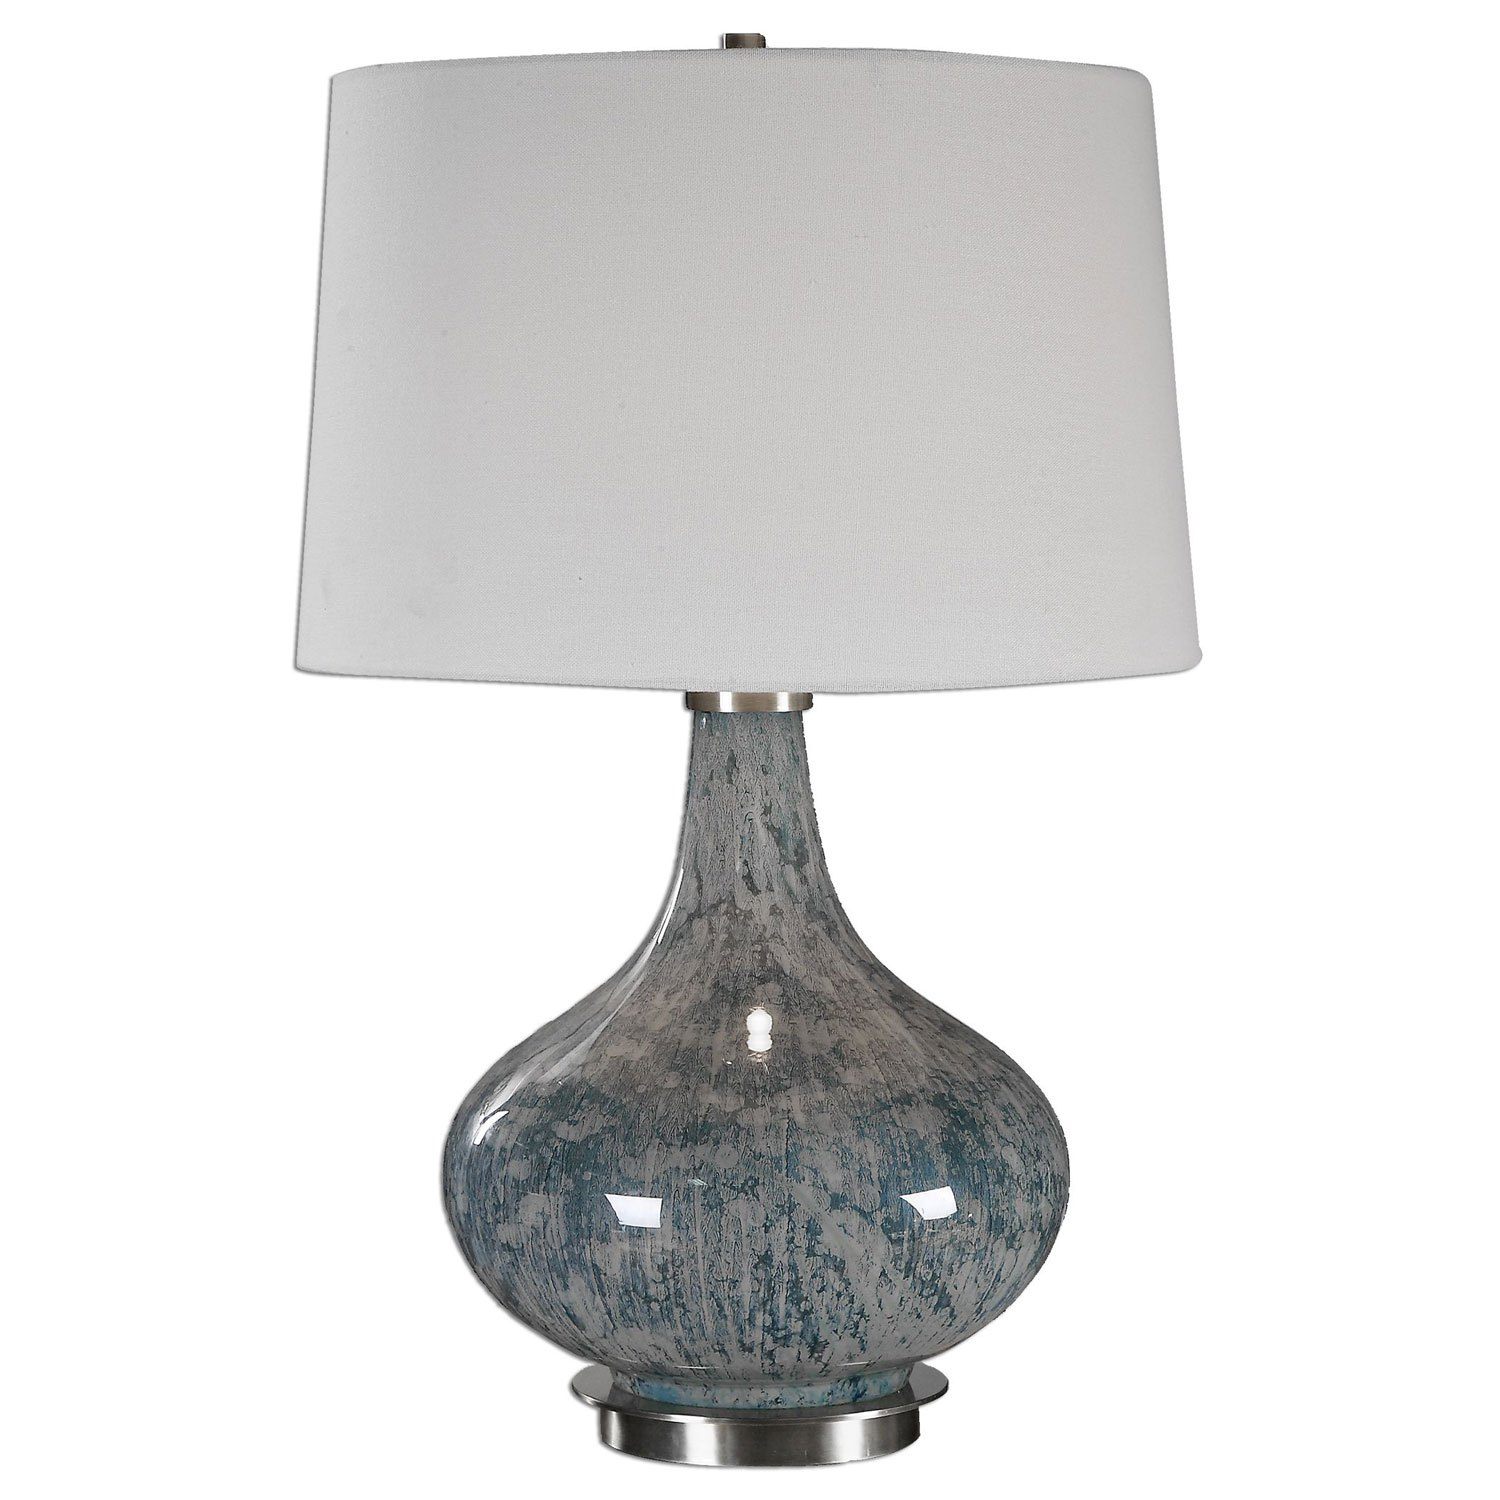 celinda blue gray one light table lamp uttermost accent black and winsome wood cassie with glass top cappuccino finish acrylic chairs west elm carpets office chair console behind